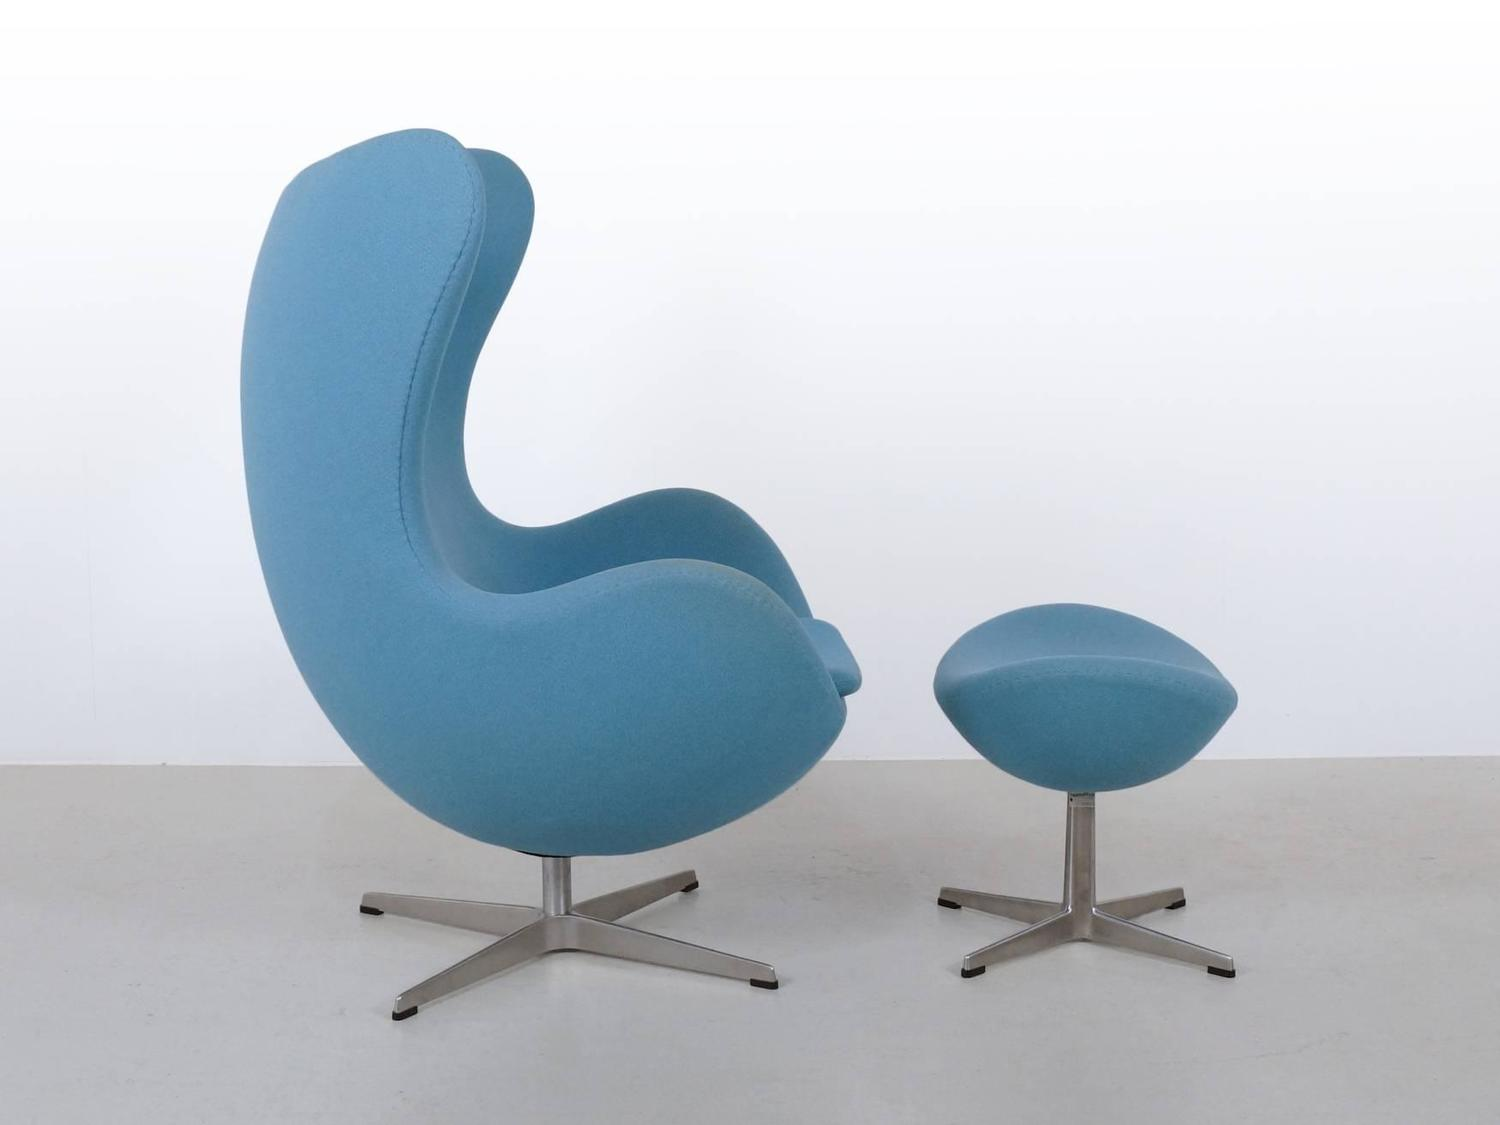 blue arne jacobsen egg chair and ottoman by fritz hansen. Black Bedroom Furniture Sets. Home Design Ideas